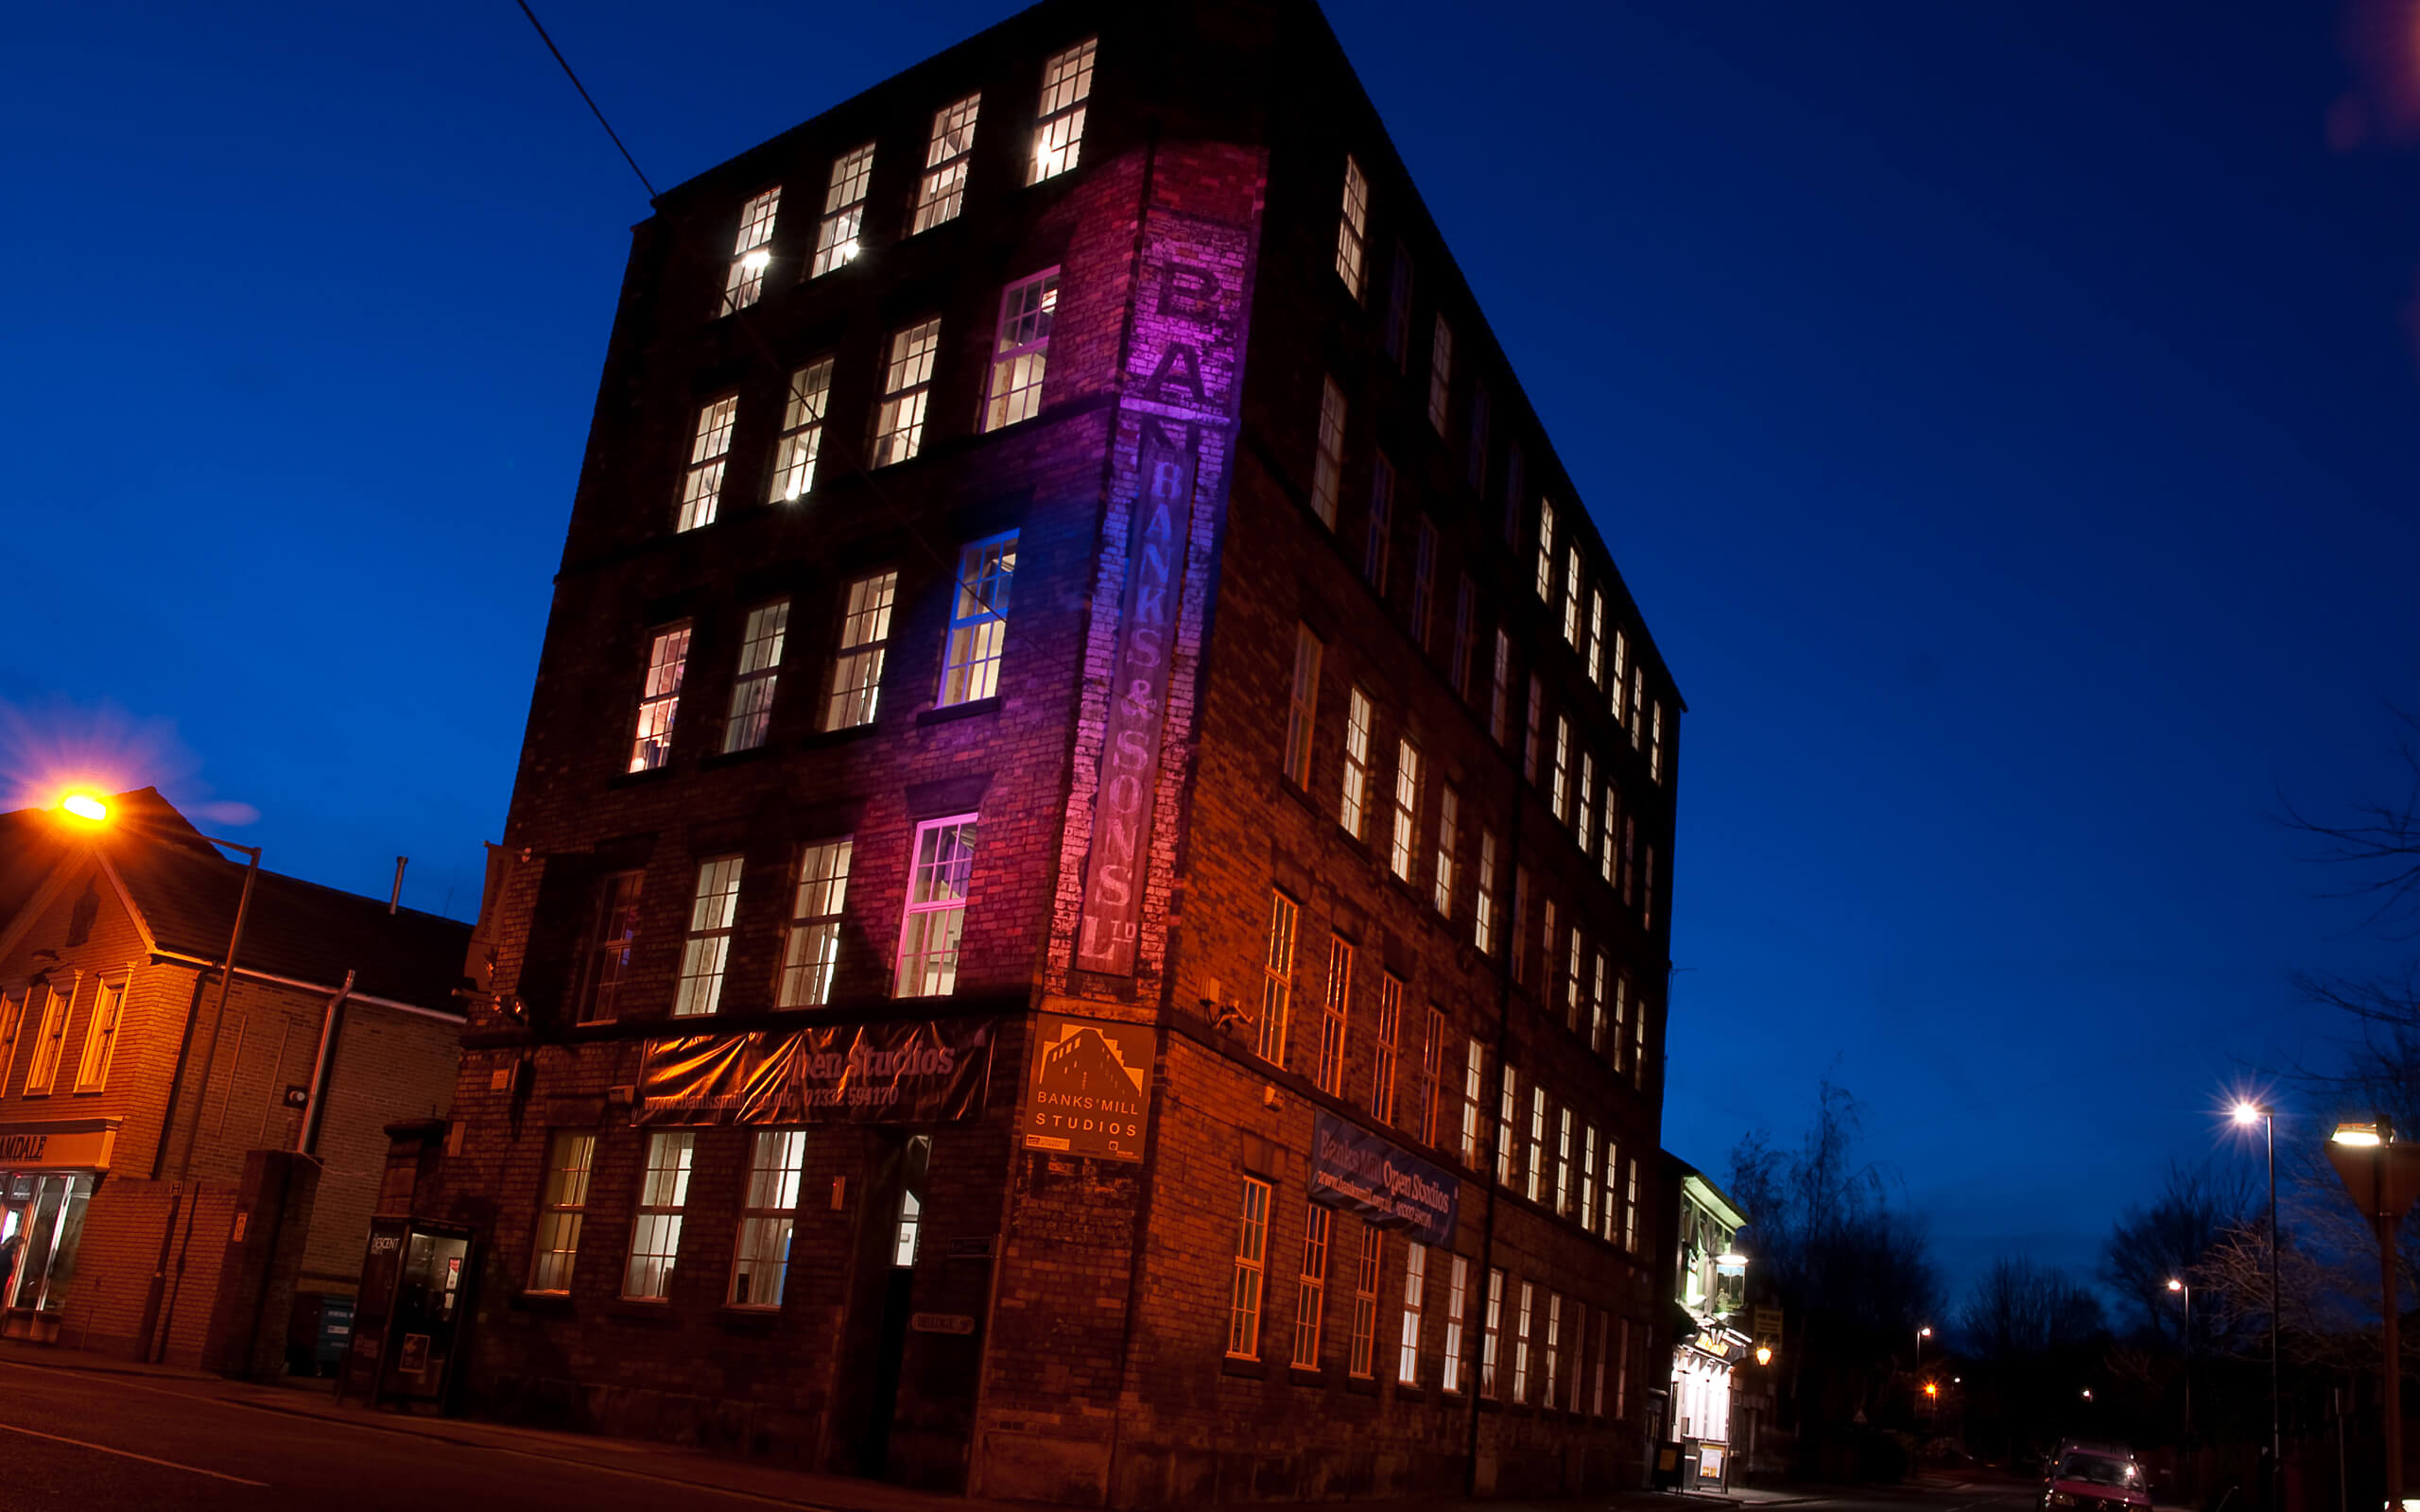 Banks Mill studios building, pink and blue colours shine through